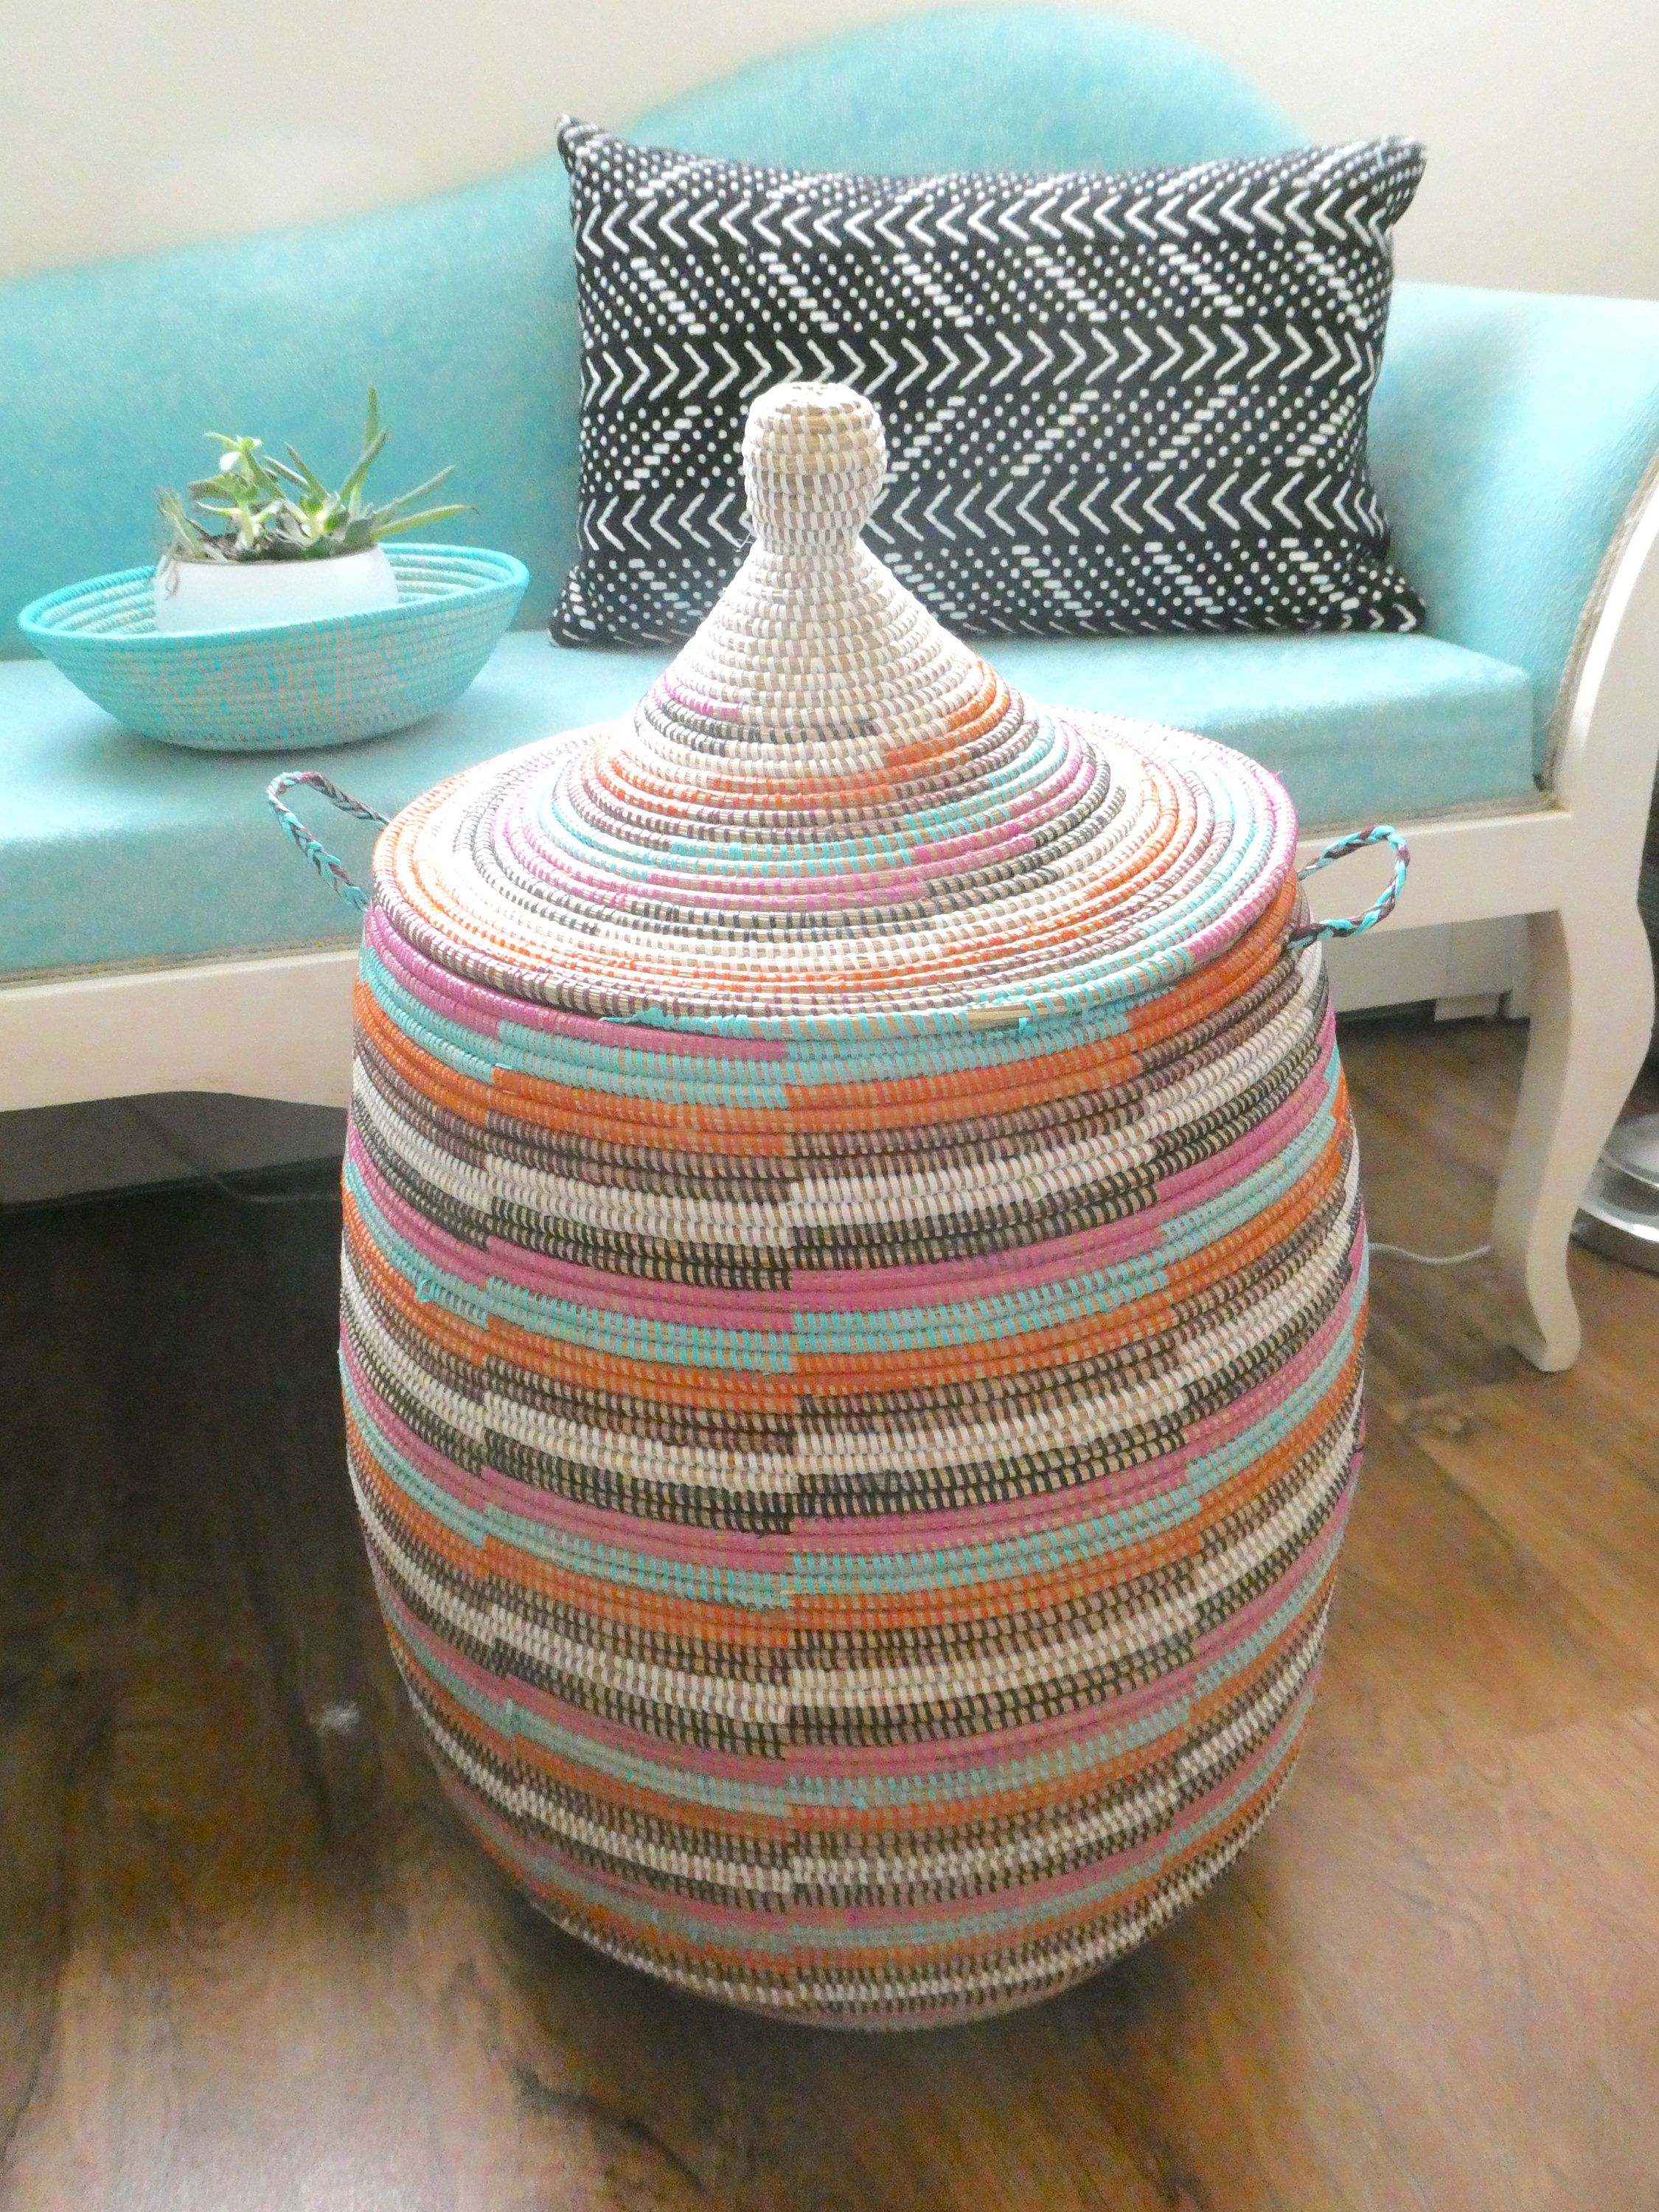 African baskets new design eclectic toy storage home decor